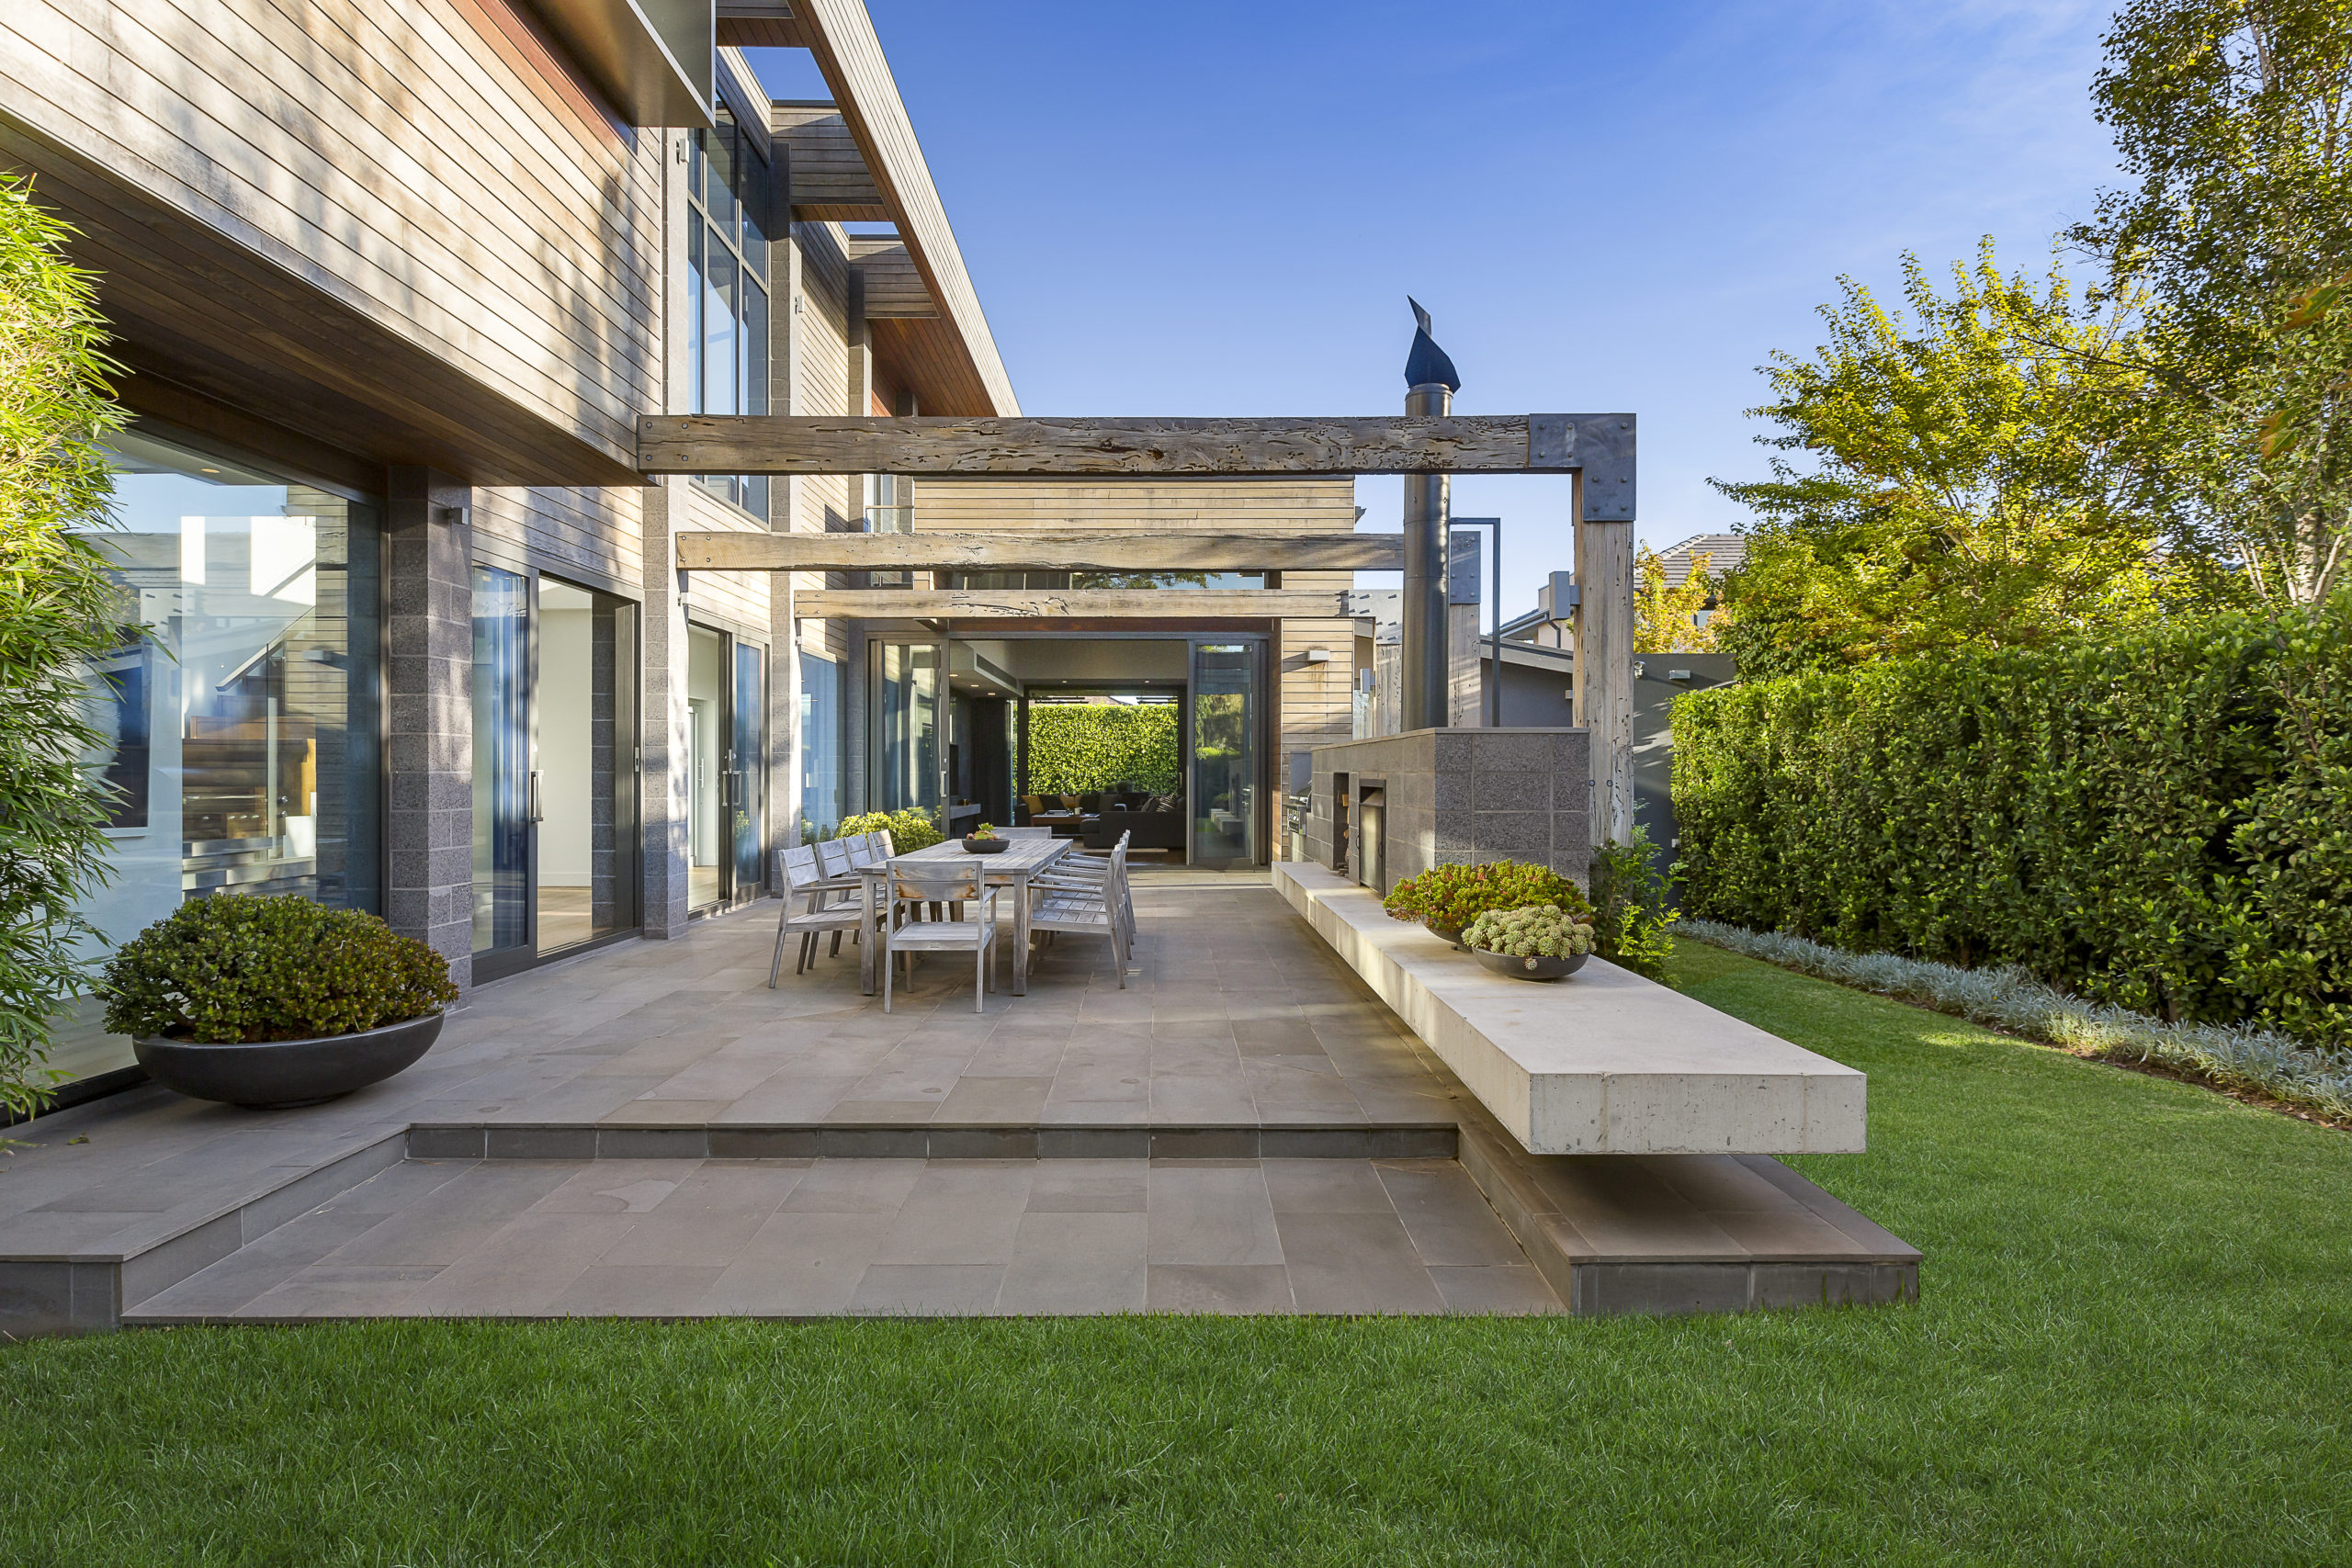 Top Rated Landscaping Websites for 2021